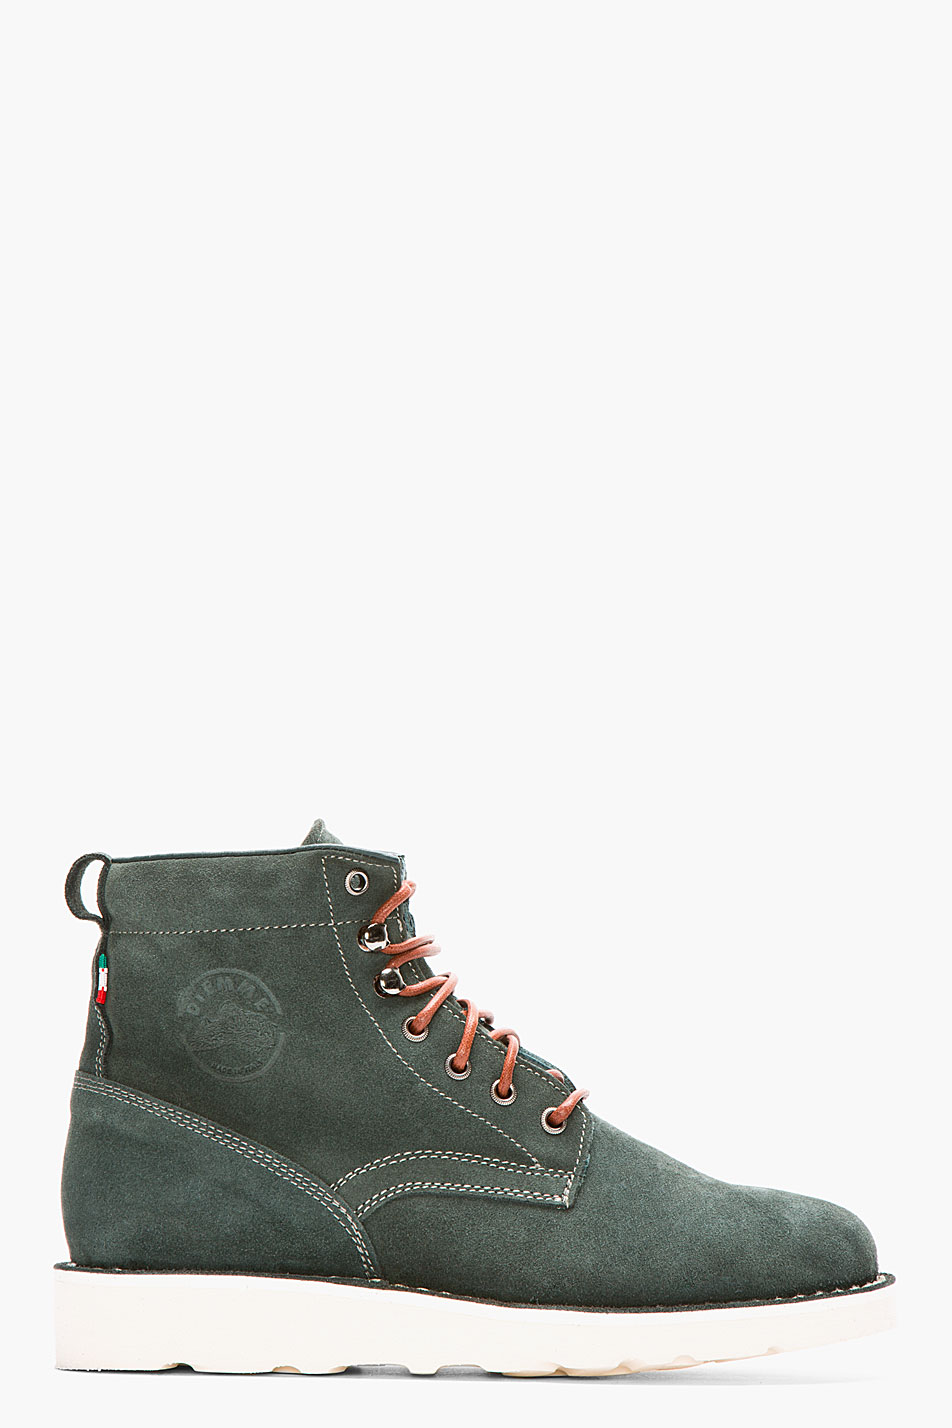 diemme forest green suede firenze boots in green for